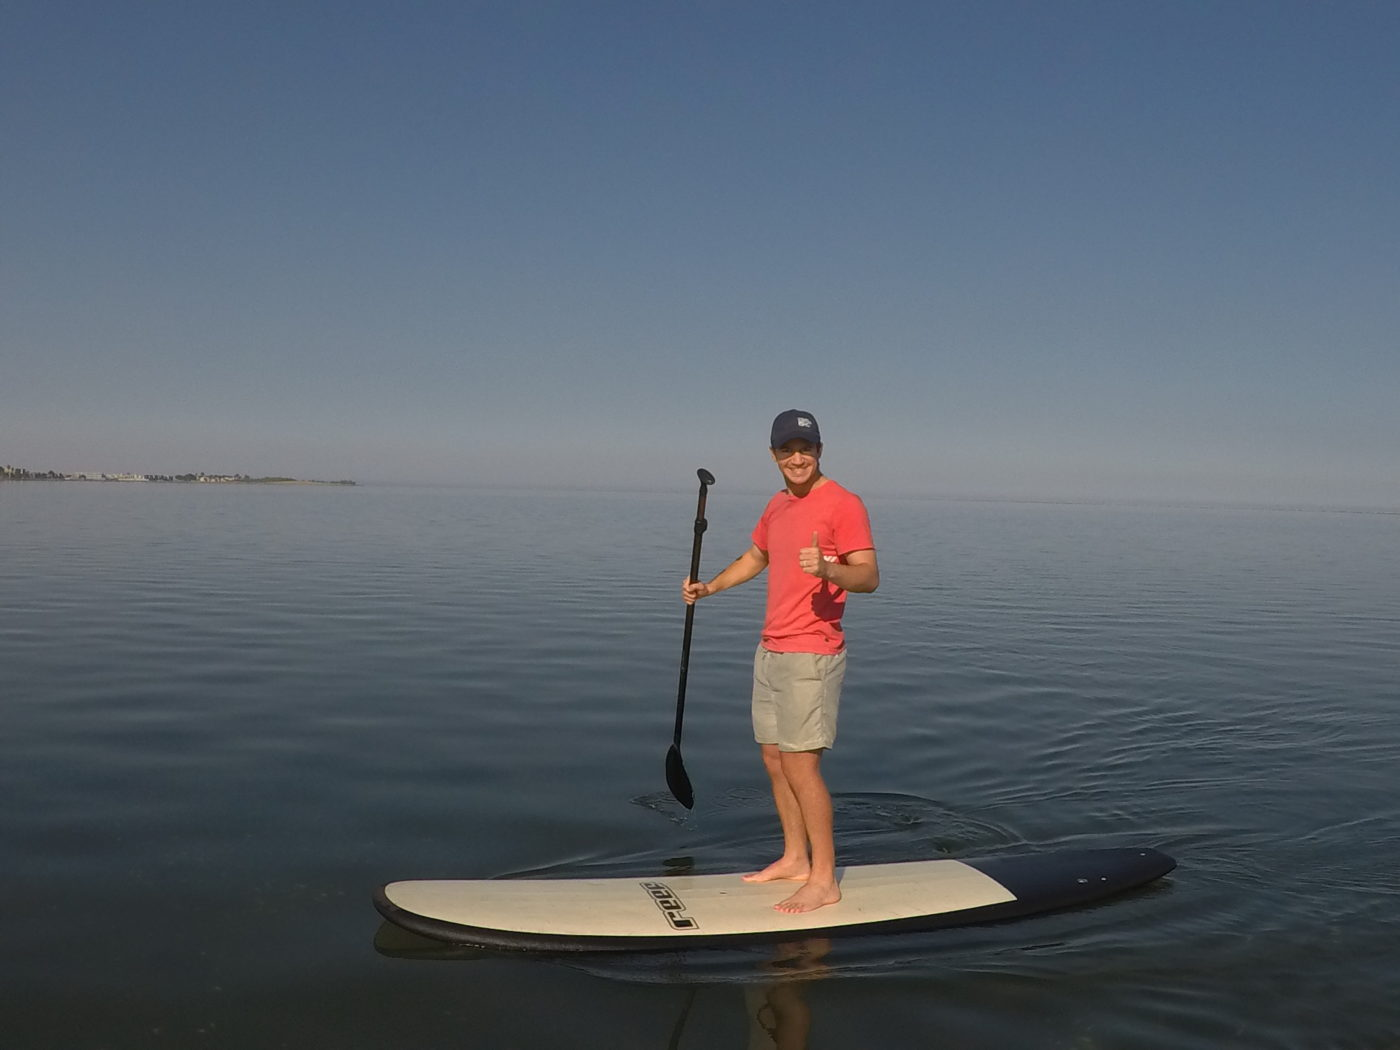 Man doing Stand up paddle boarding